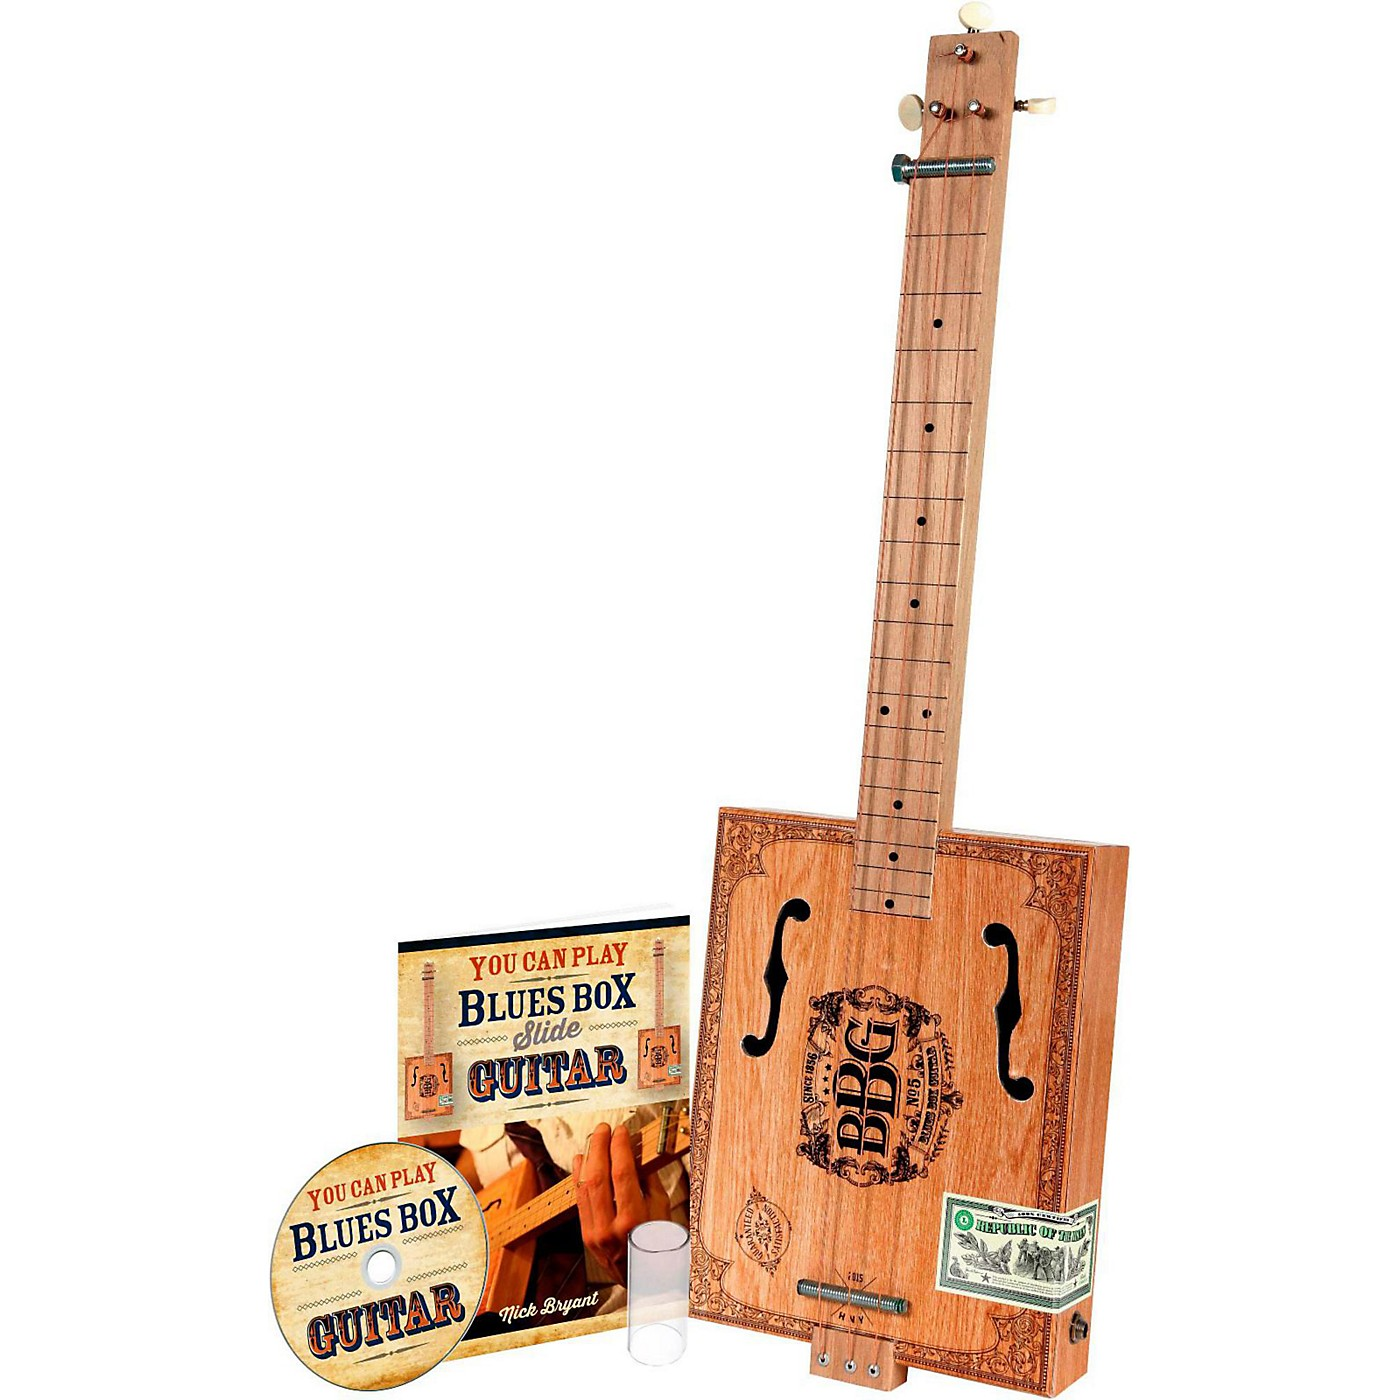 Hinkler The Electric Blues Box Slide Guitar with Guitar Slide, Instruction Book and Audio CD thumbnail